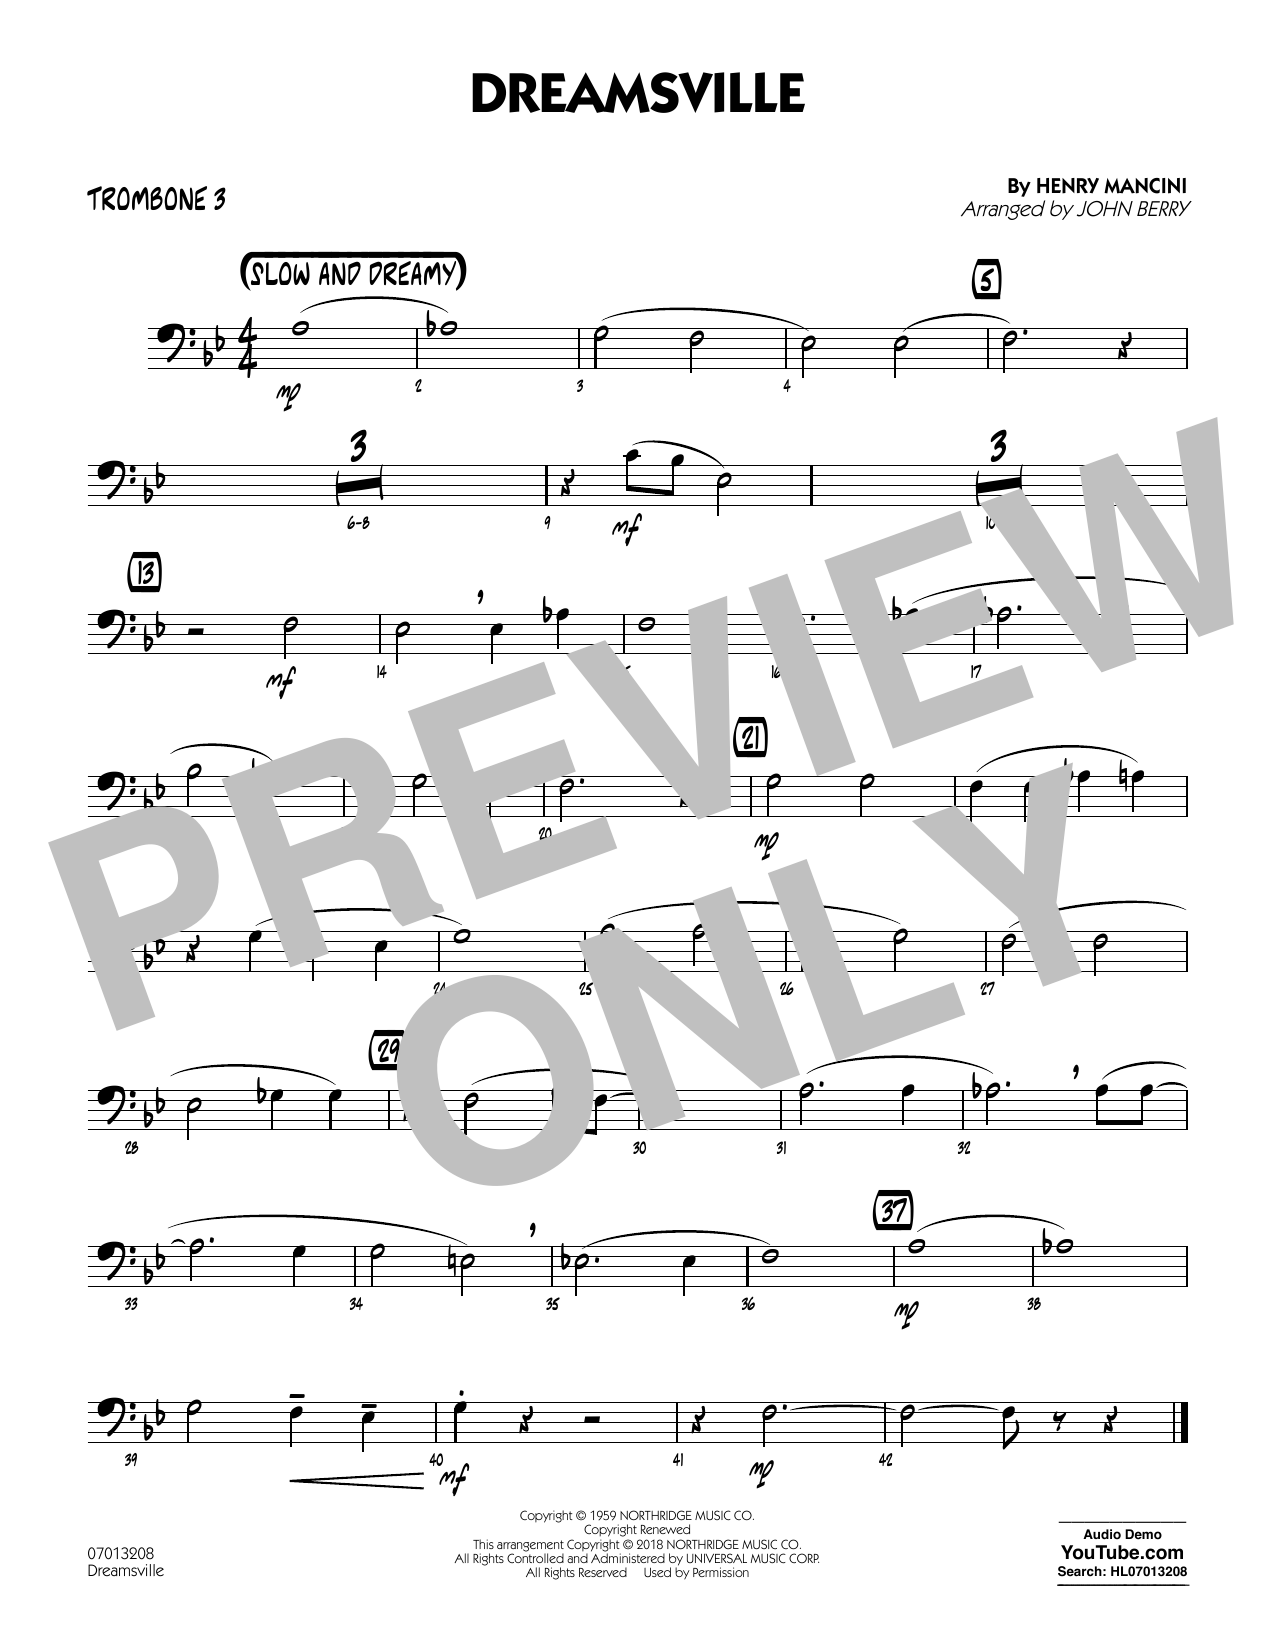 John Berry Dreamsville - Trombone 3 sheet music notes and chords. Download Printable PDF.